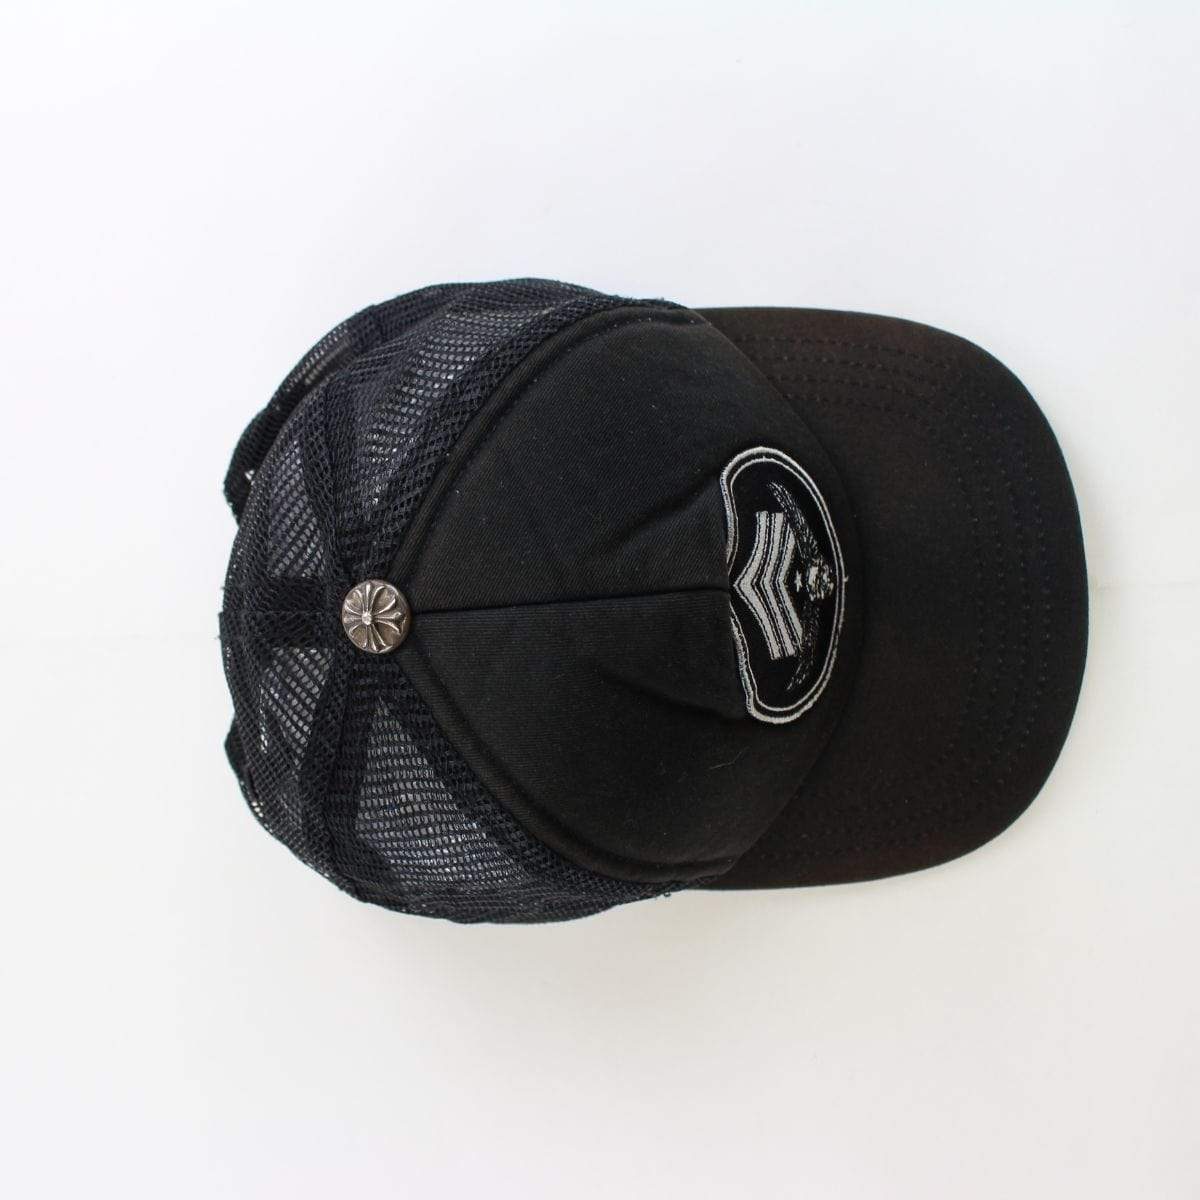 chrome hearts x foti trucker cap black - SaruGeneral